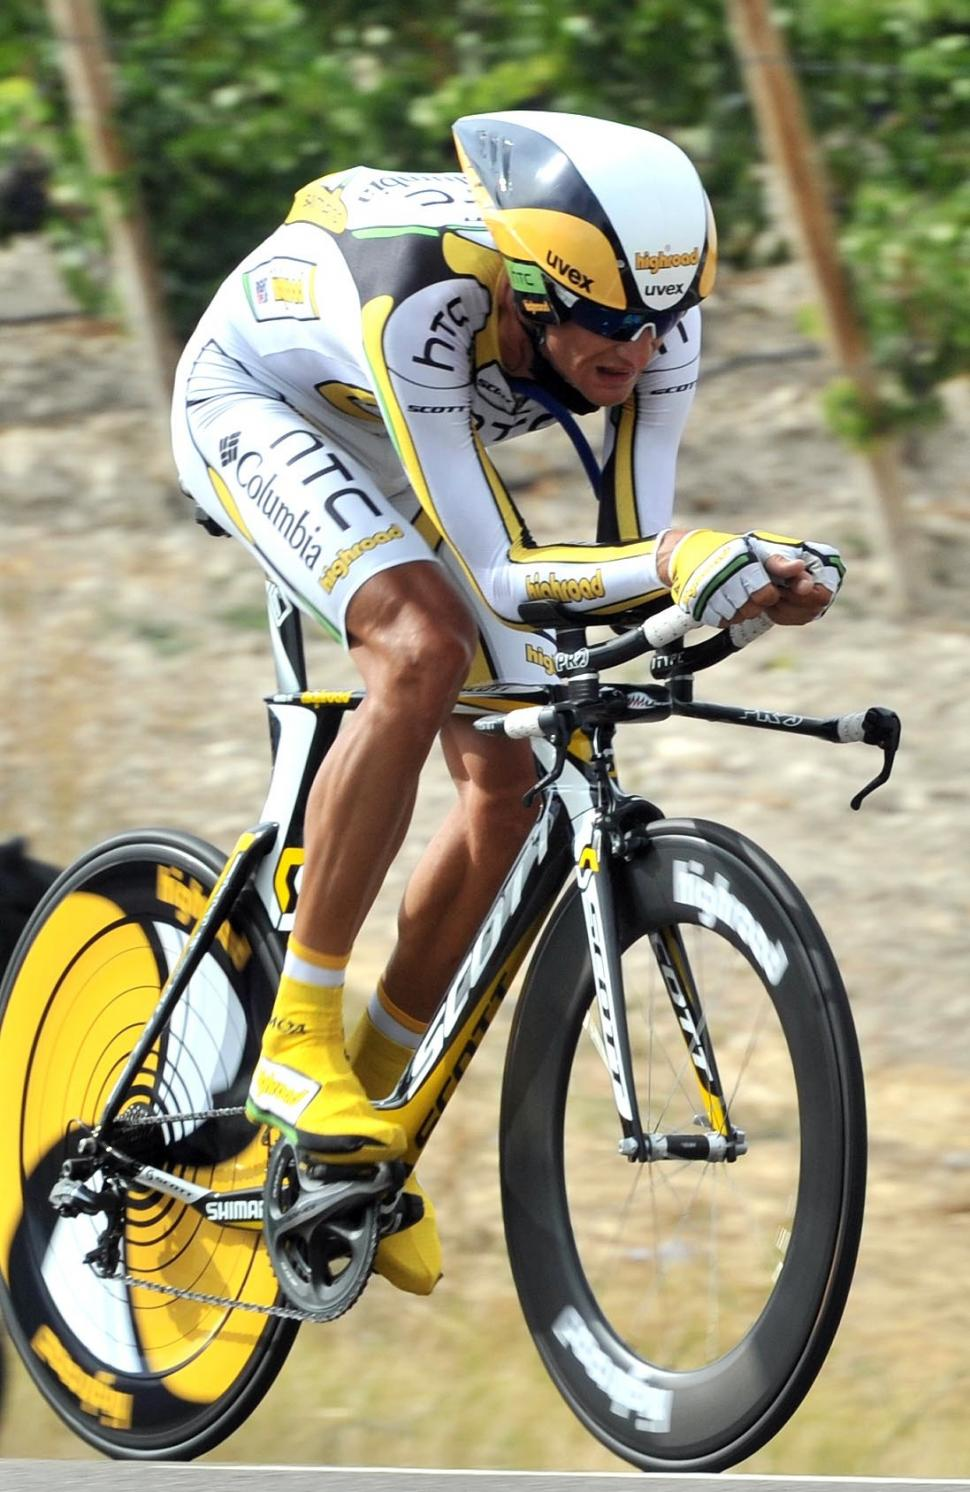 Peter Velits on his way to winning Stage 17 of the 2010 Vuelta (copyright - Unipublic:Graham Watson)